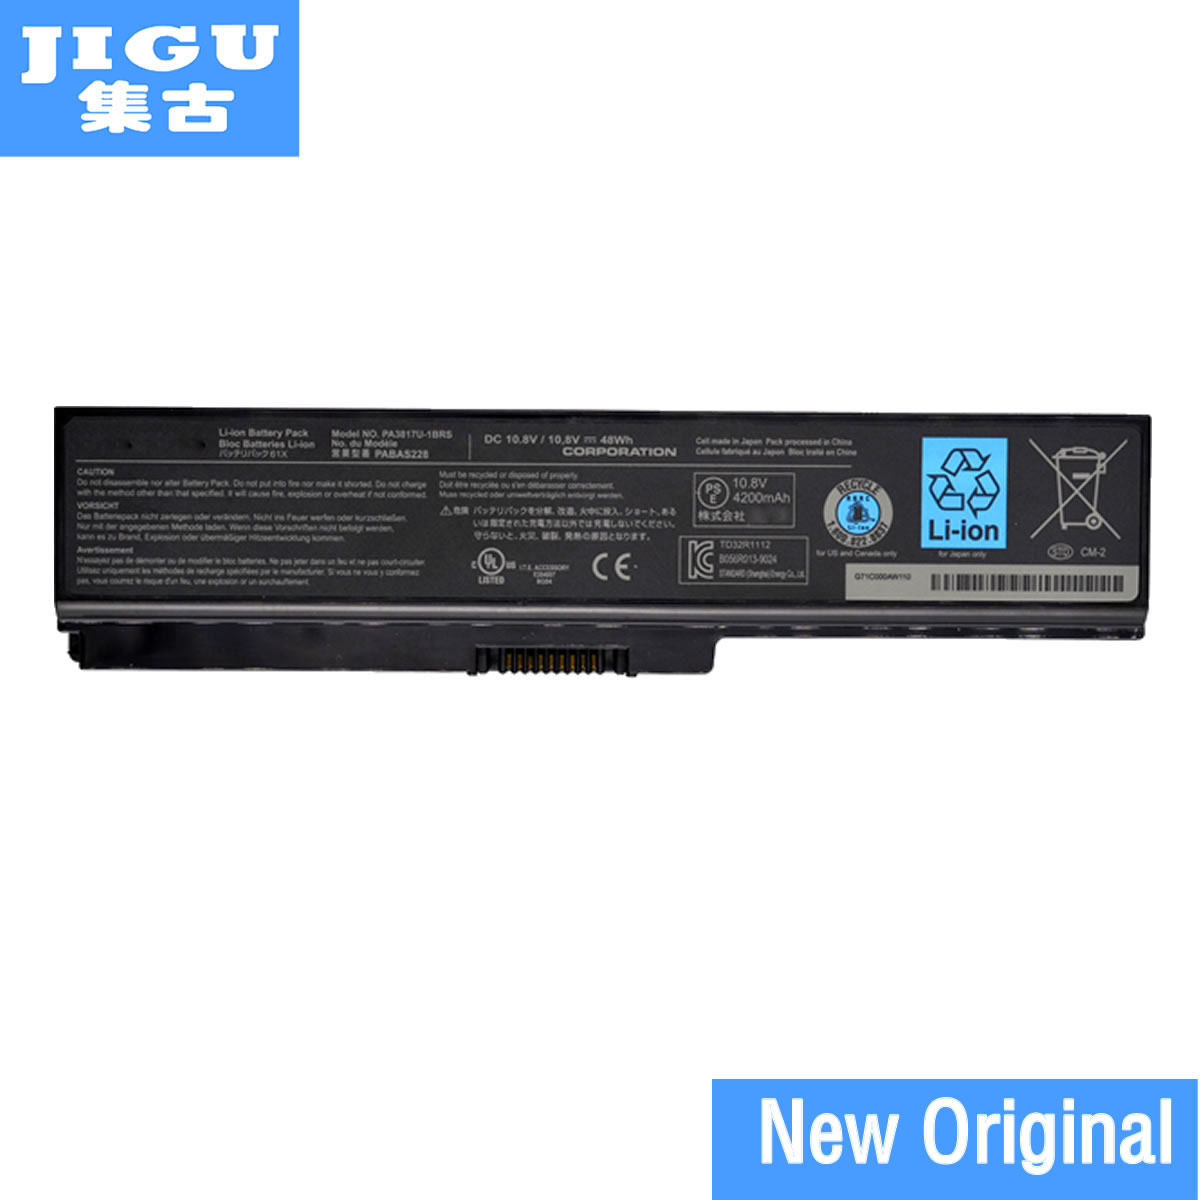 JIGU Original Battery For Toshiba PA3817U-1BRS PA3817 PA3818U-1BRS PA3817U For Satellite L745 L740 L655 L750 L750D L755 L630